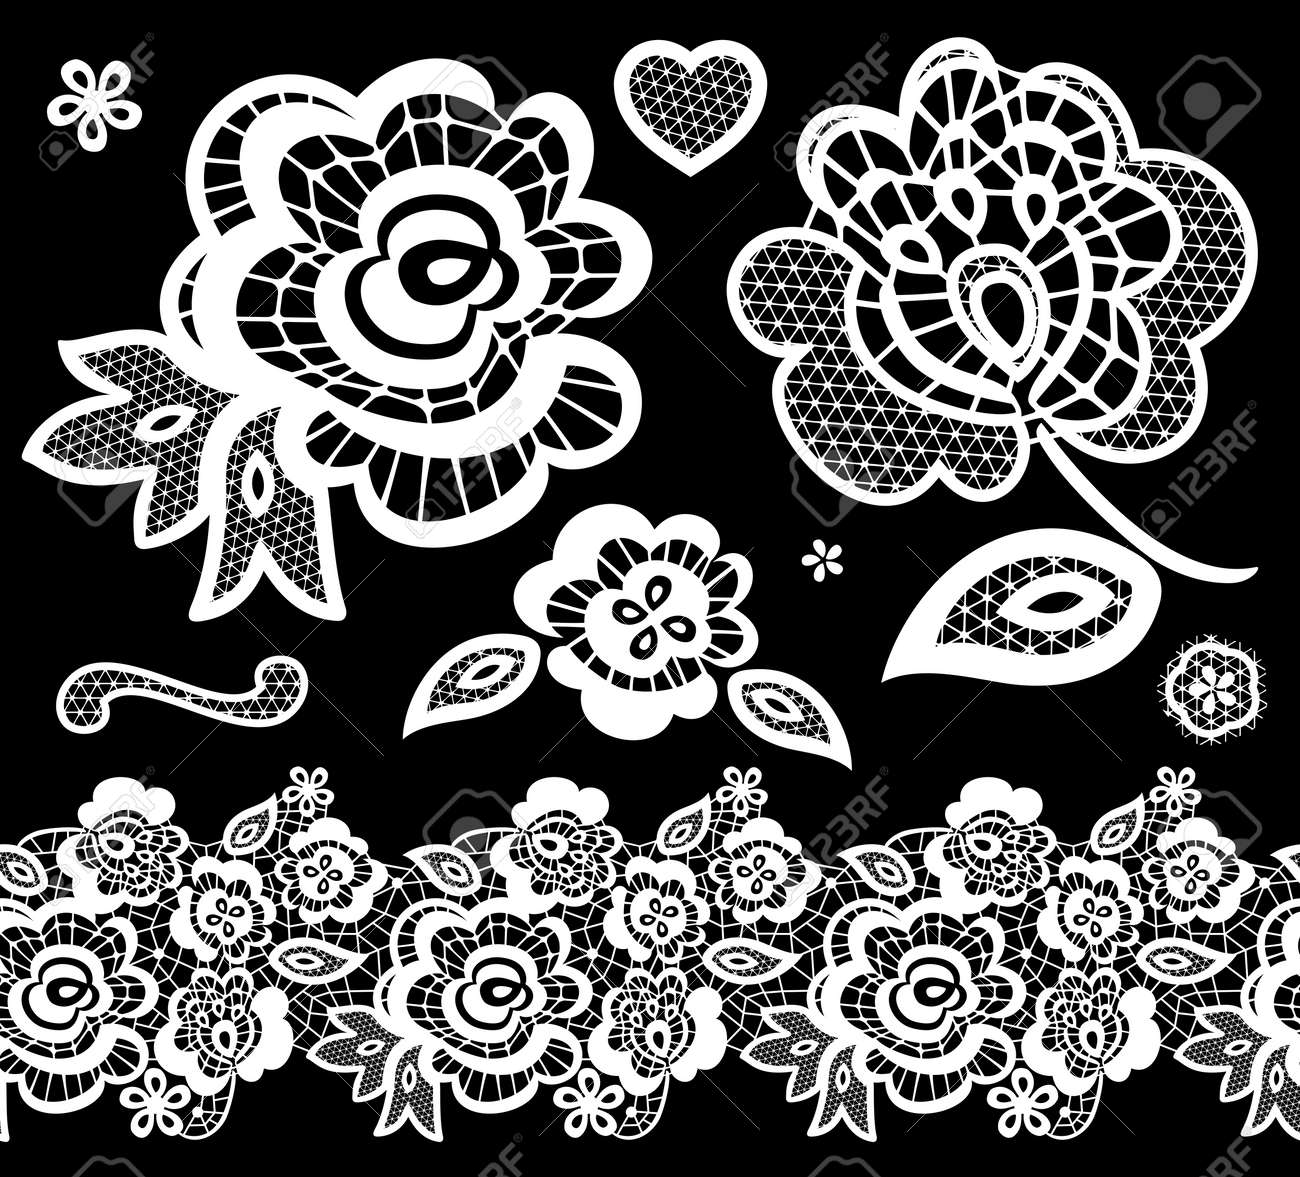 Lace Embroidery Design Elements With Abstract Flowers On Black ...